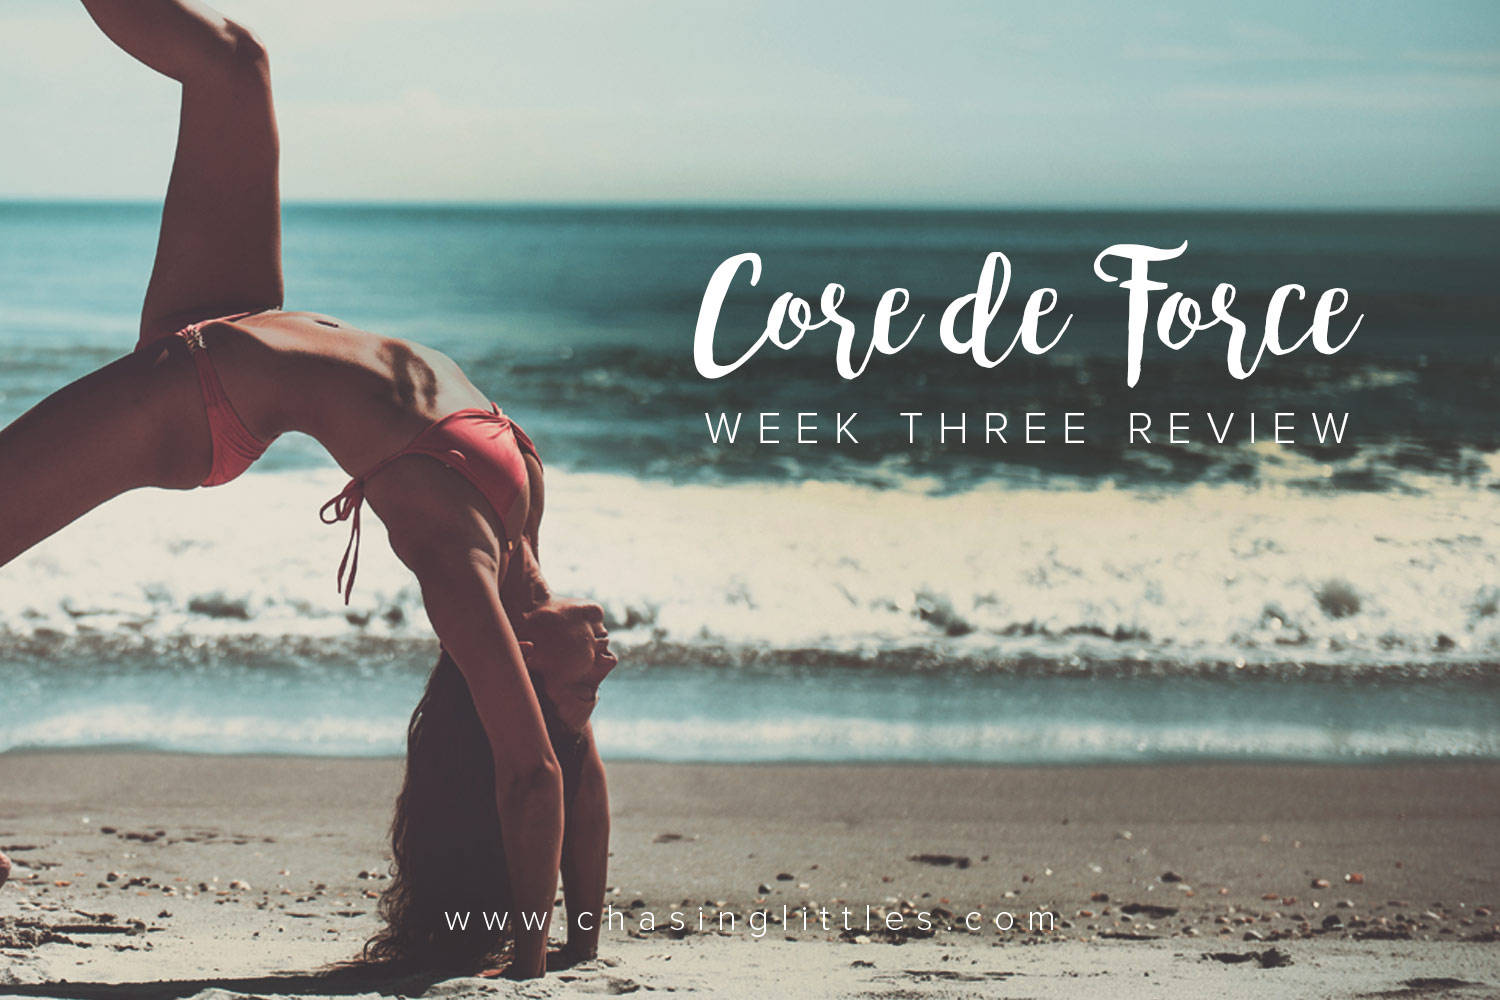 Core de force week three review